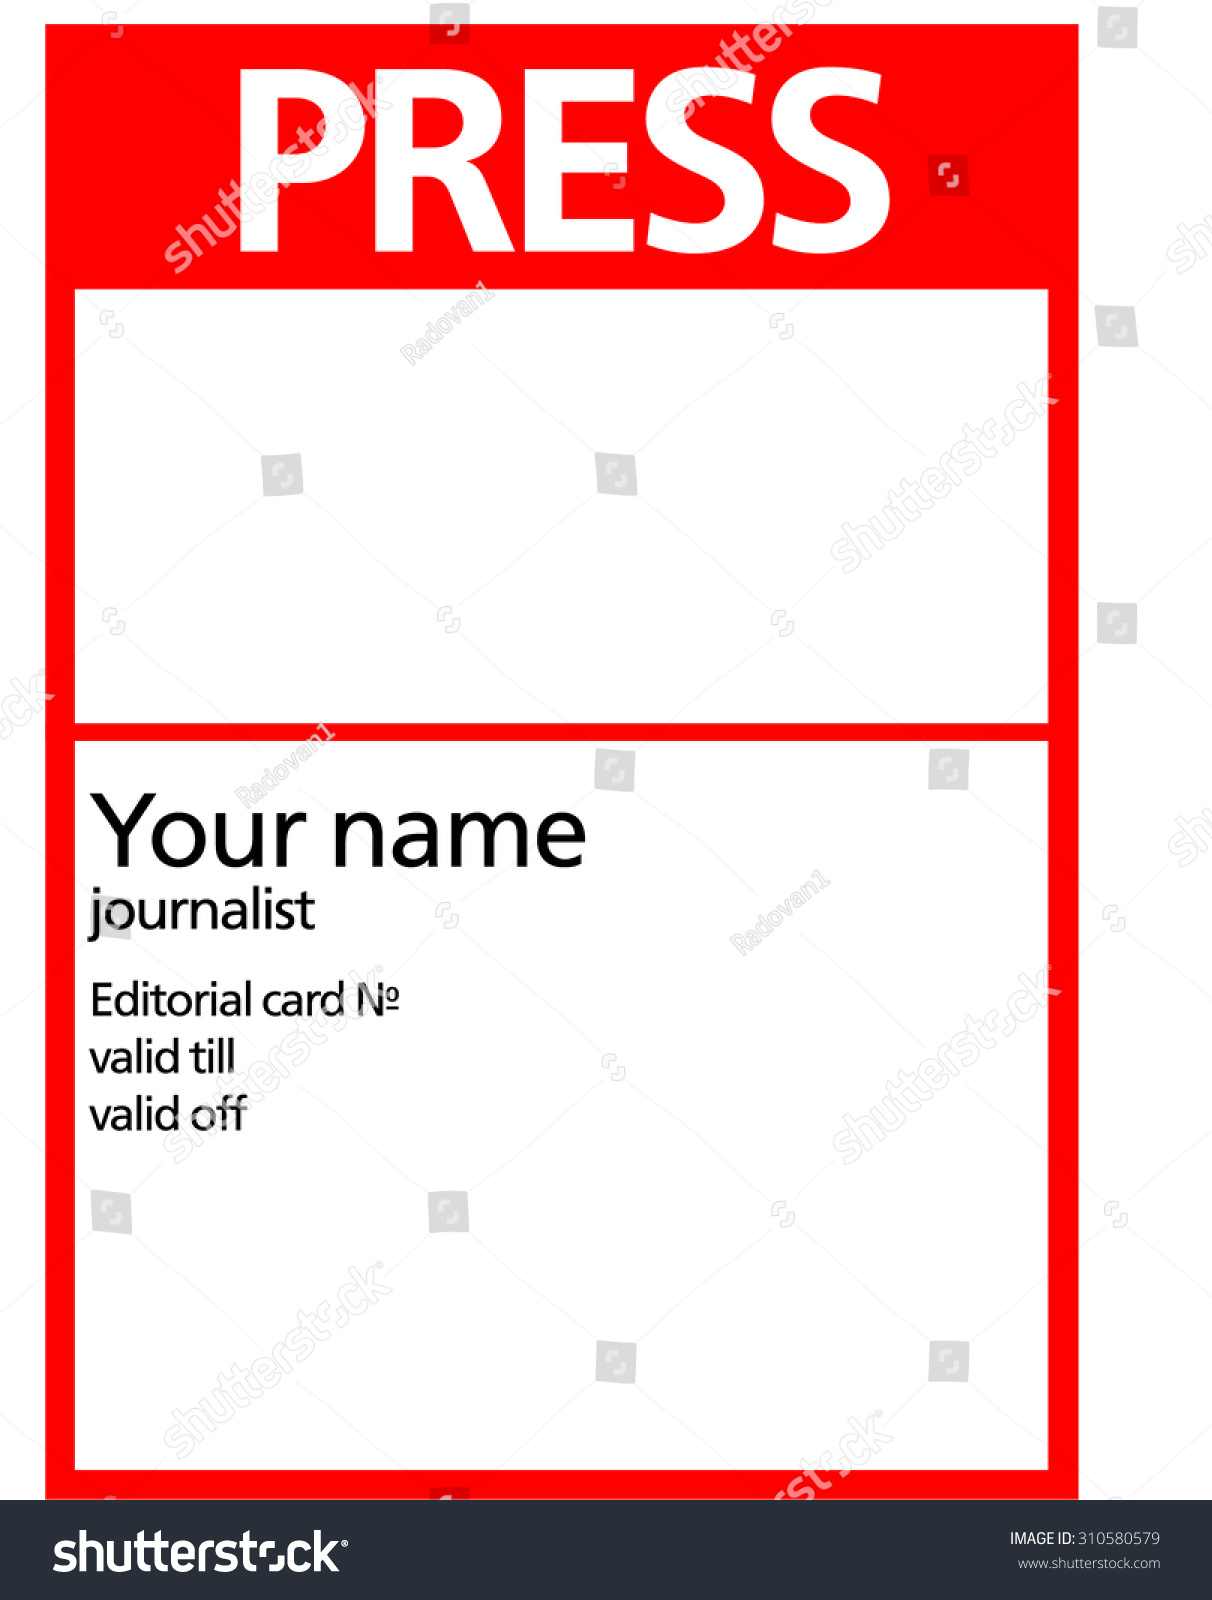 media press pass template - press pass template images galleries